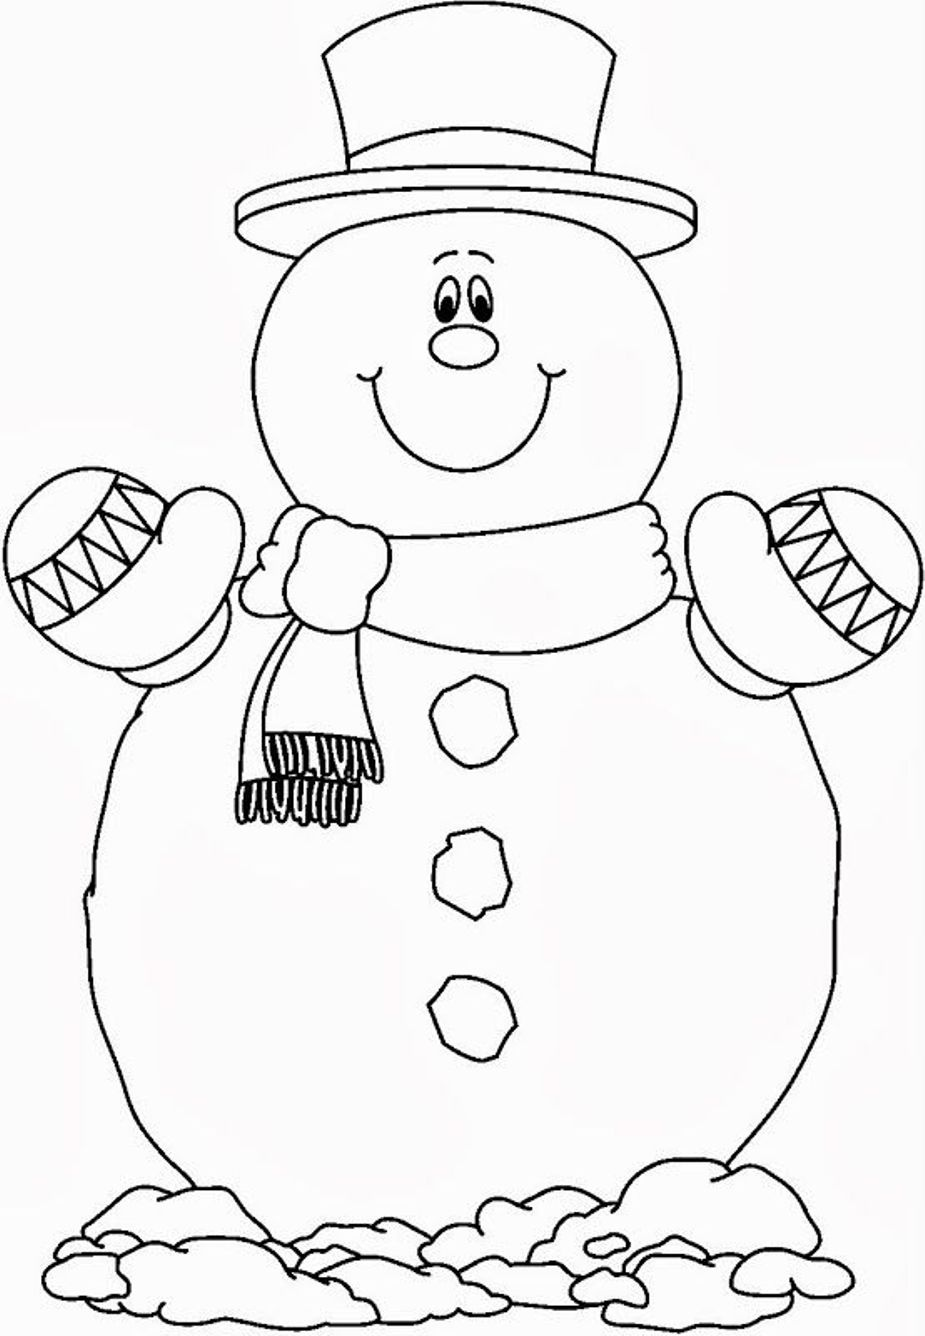 925x1336 Christmas Cartoon Coloring Pages Snowman Retro Printable